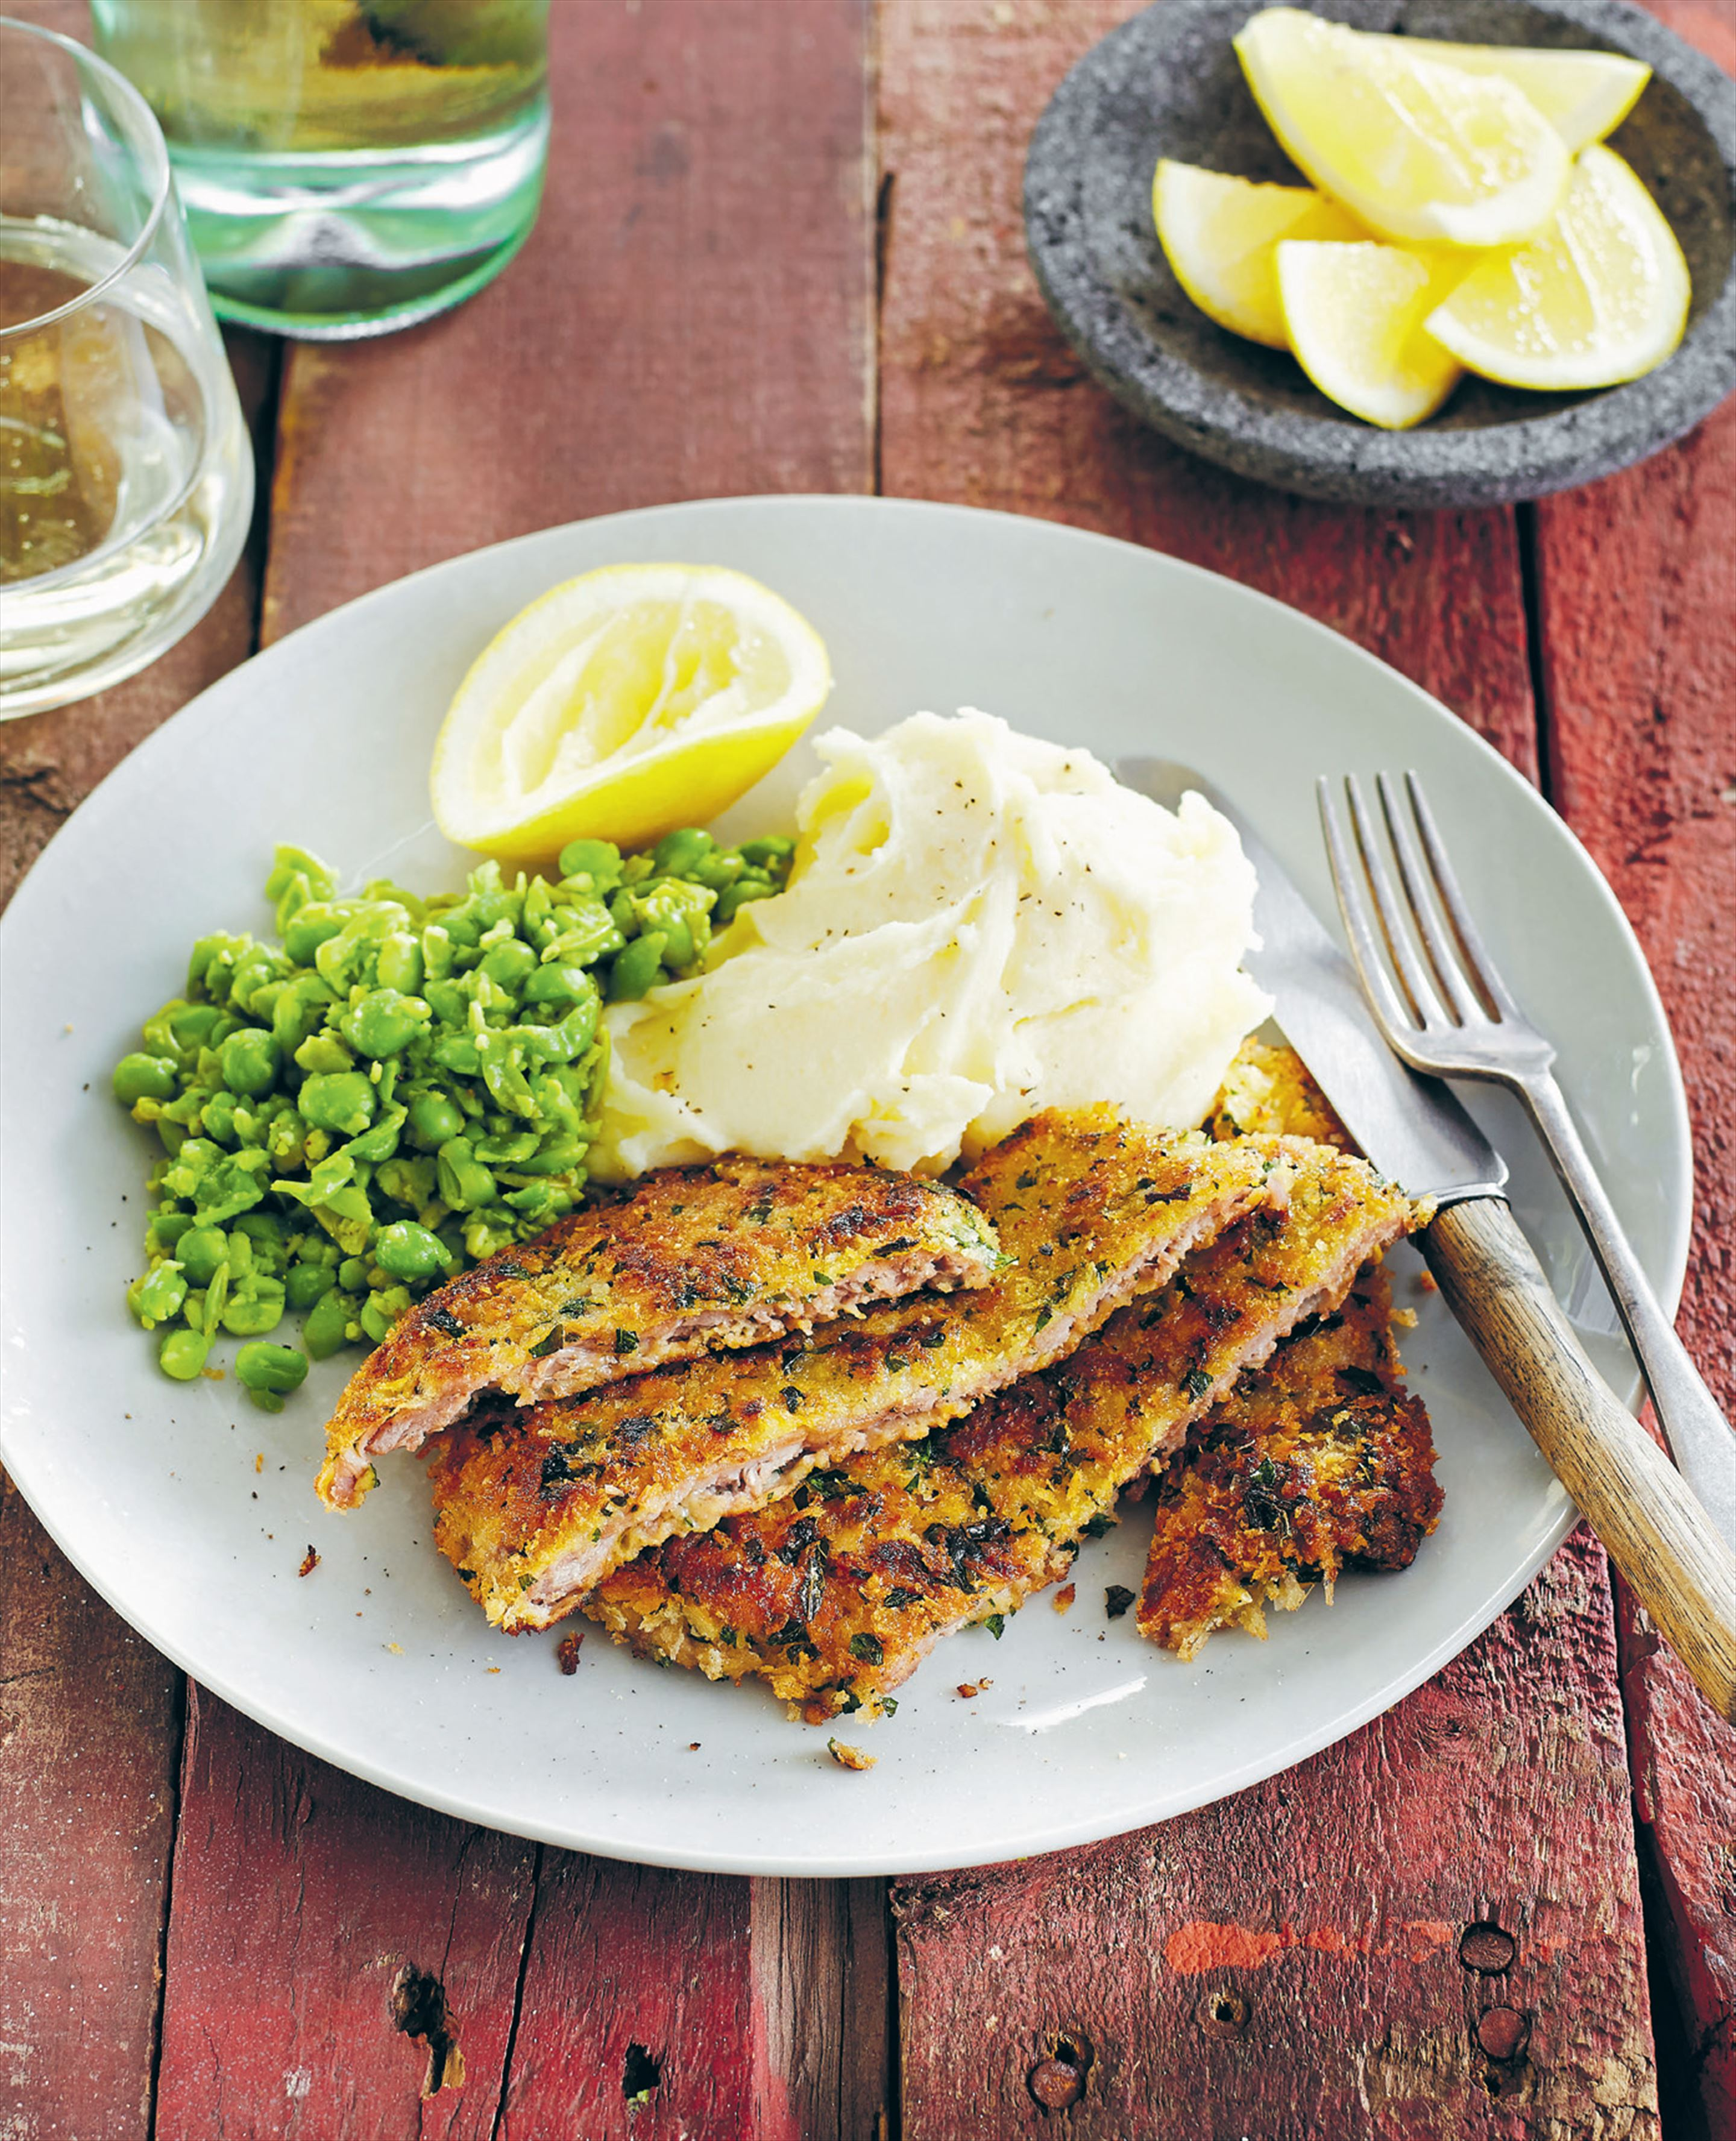 Veal schnitzel with mashed potato and smashed peas